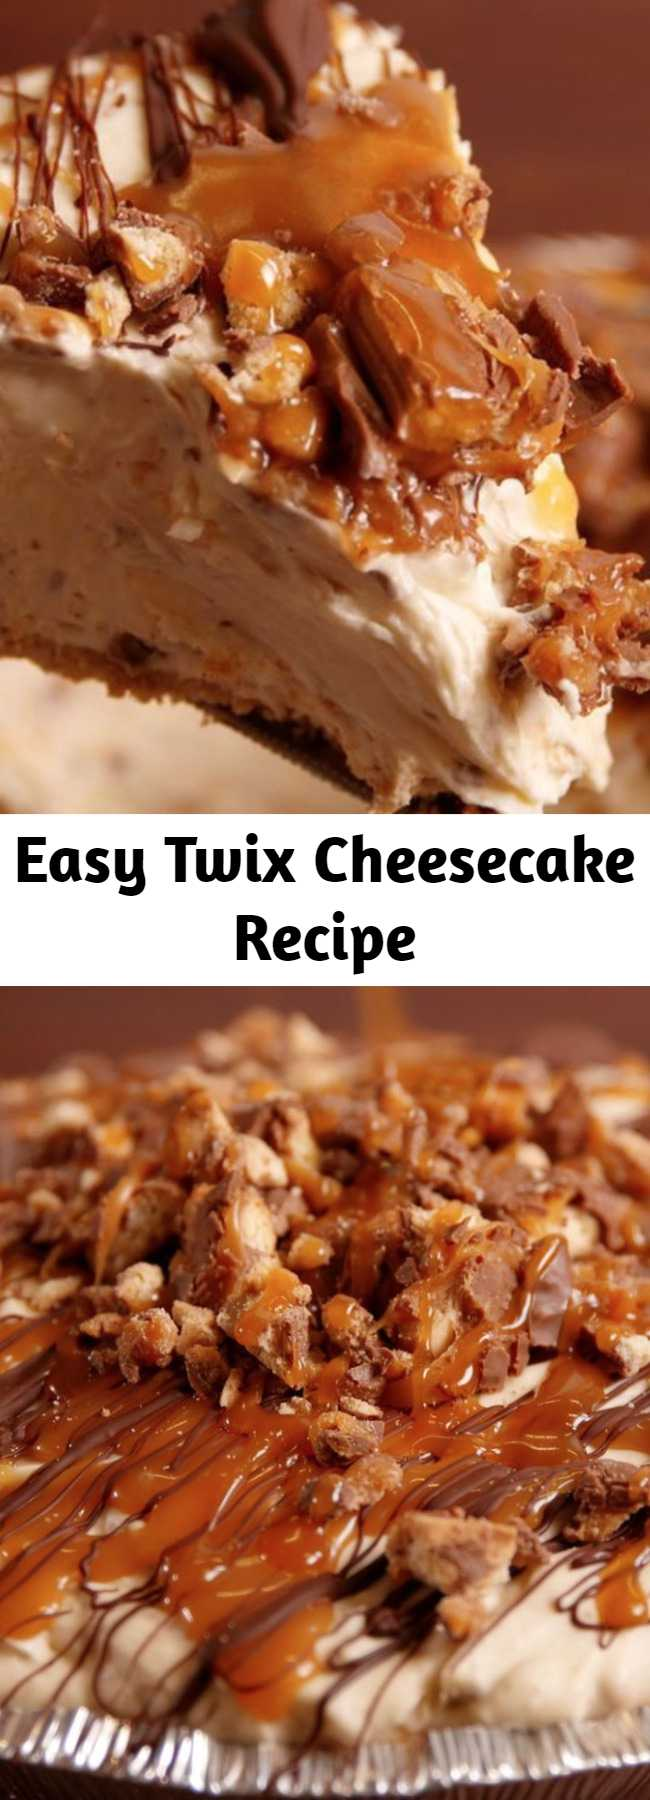 Easy Twix Cheesecake Recipe - Upgrade your cheesecake game with this easy recipe for Twix cheesecake. This cheesecake is a real crowd pleaser.